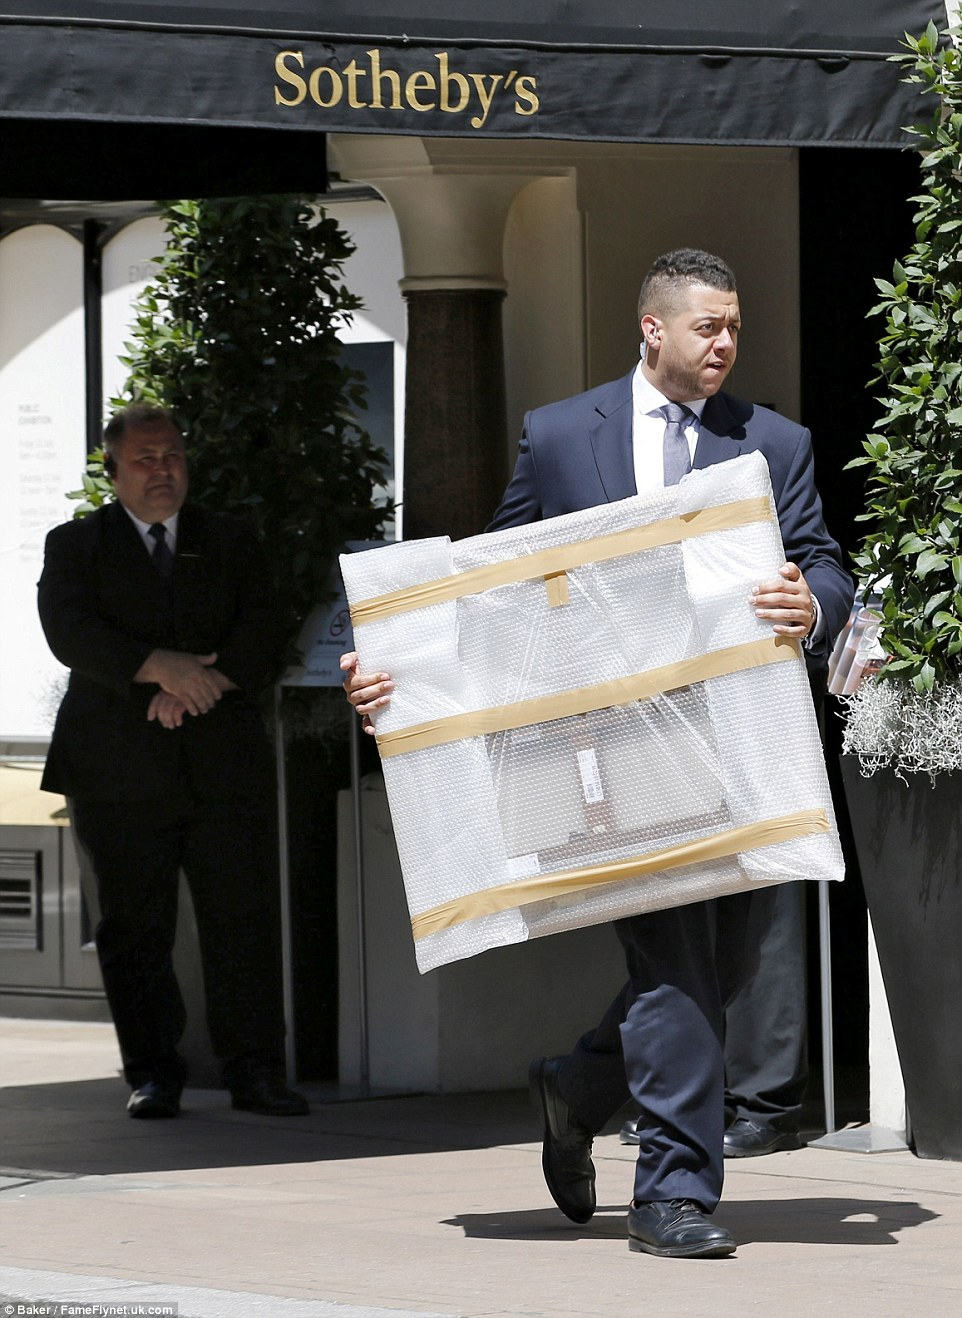 Mr Stunt's vast entourage was seen carrying several large paintings out from Sotheby's to the waiting collection of cars